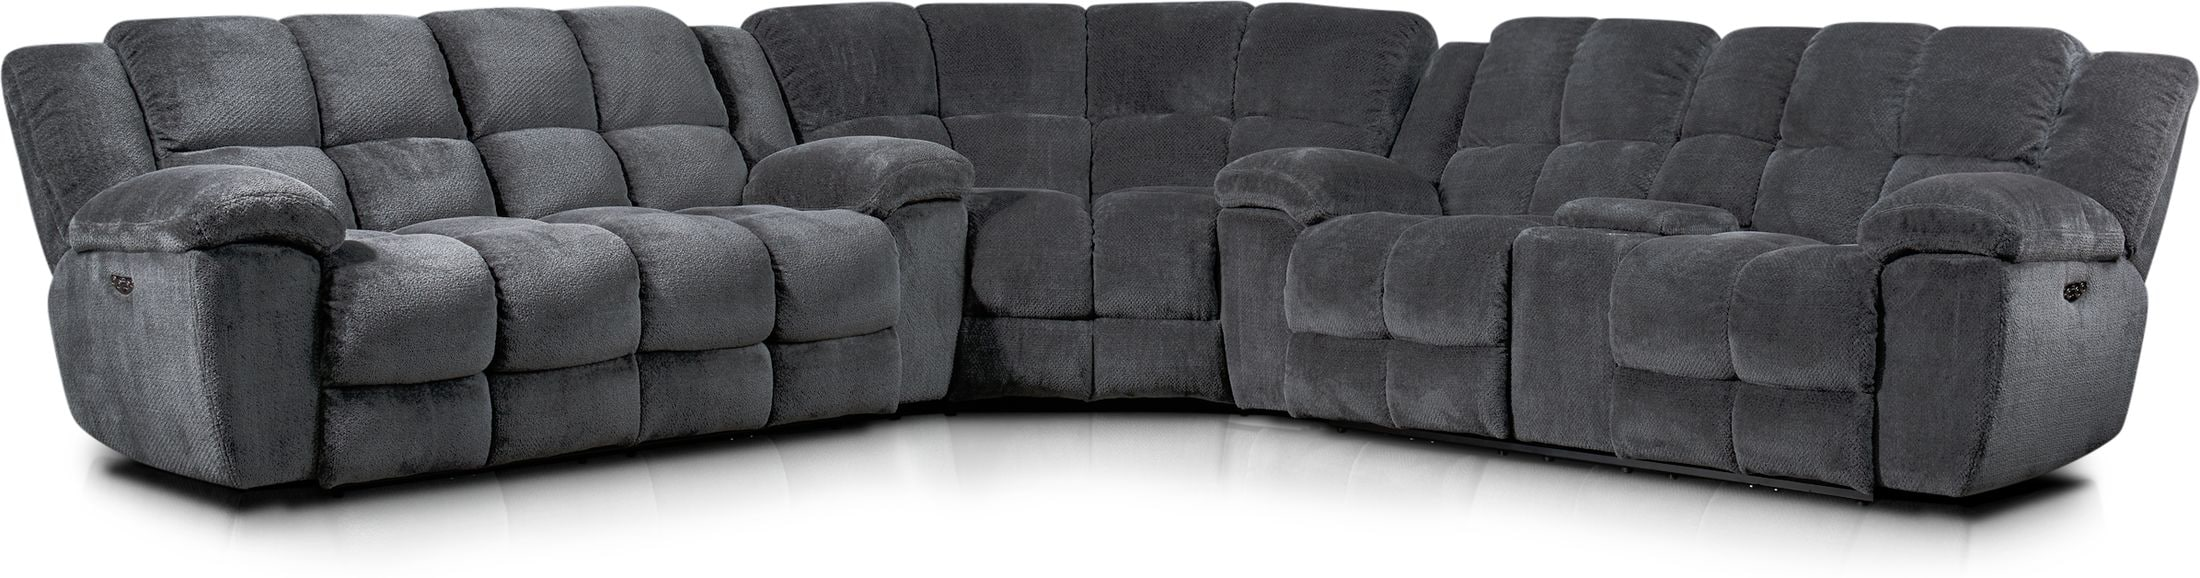 mellow 3 piece dual power reclining sectional with 4 reclining seats gray